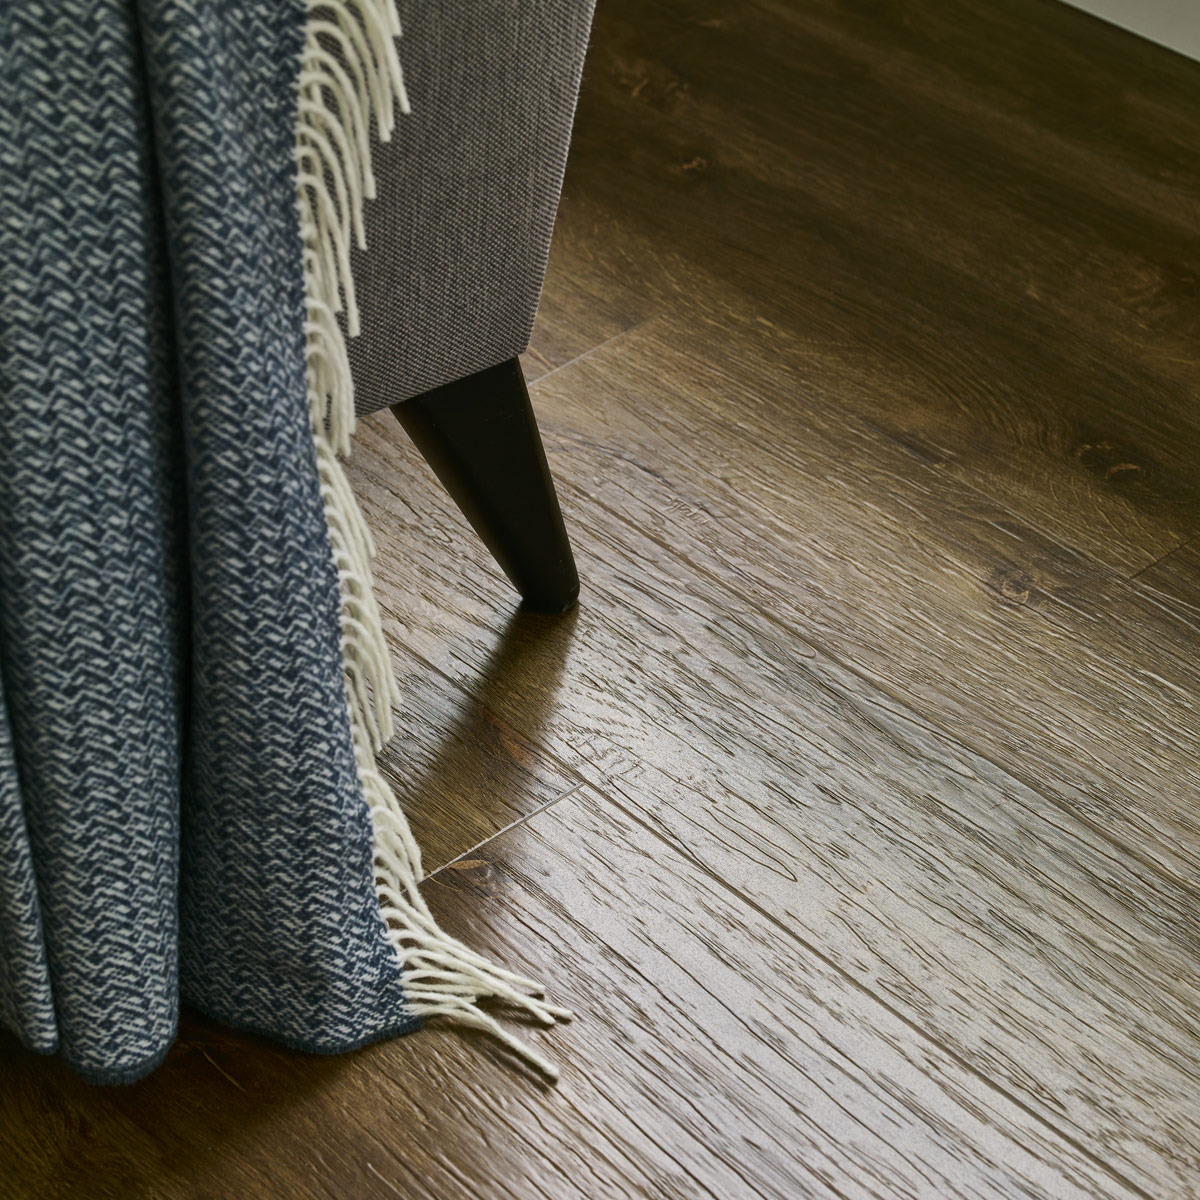 Soft furnishings with LVT flooring